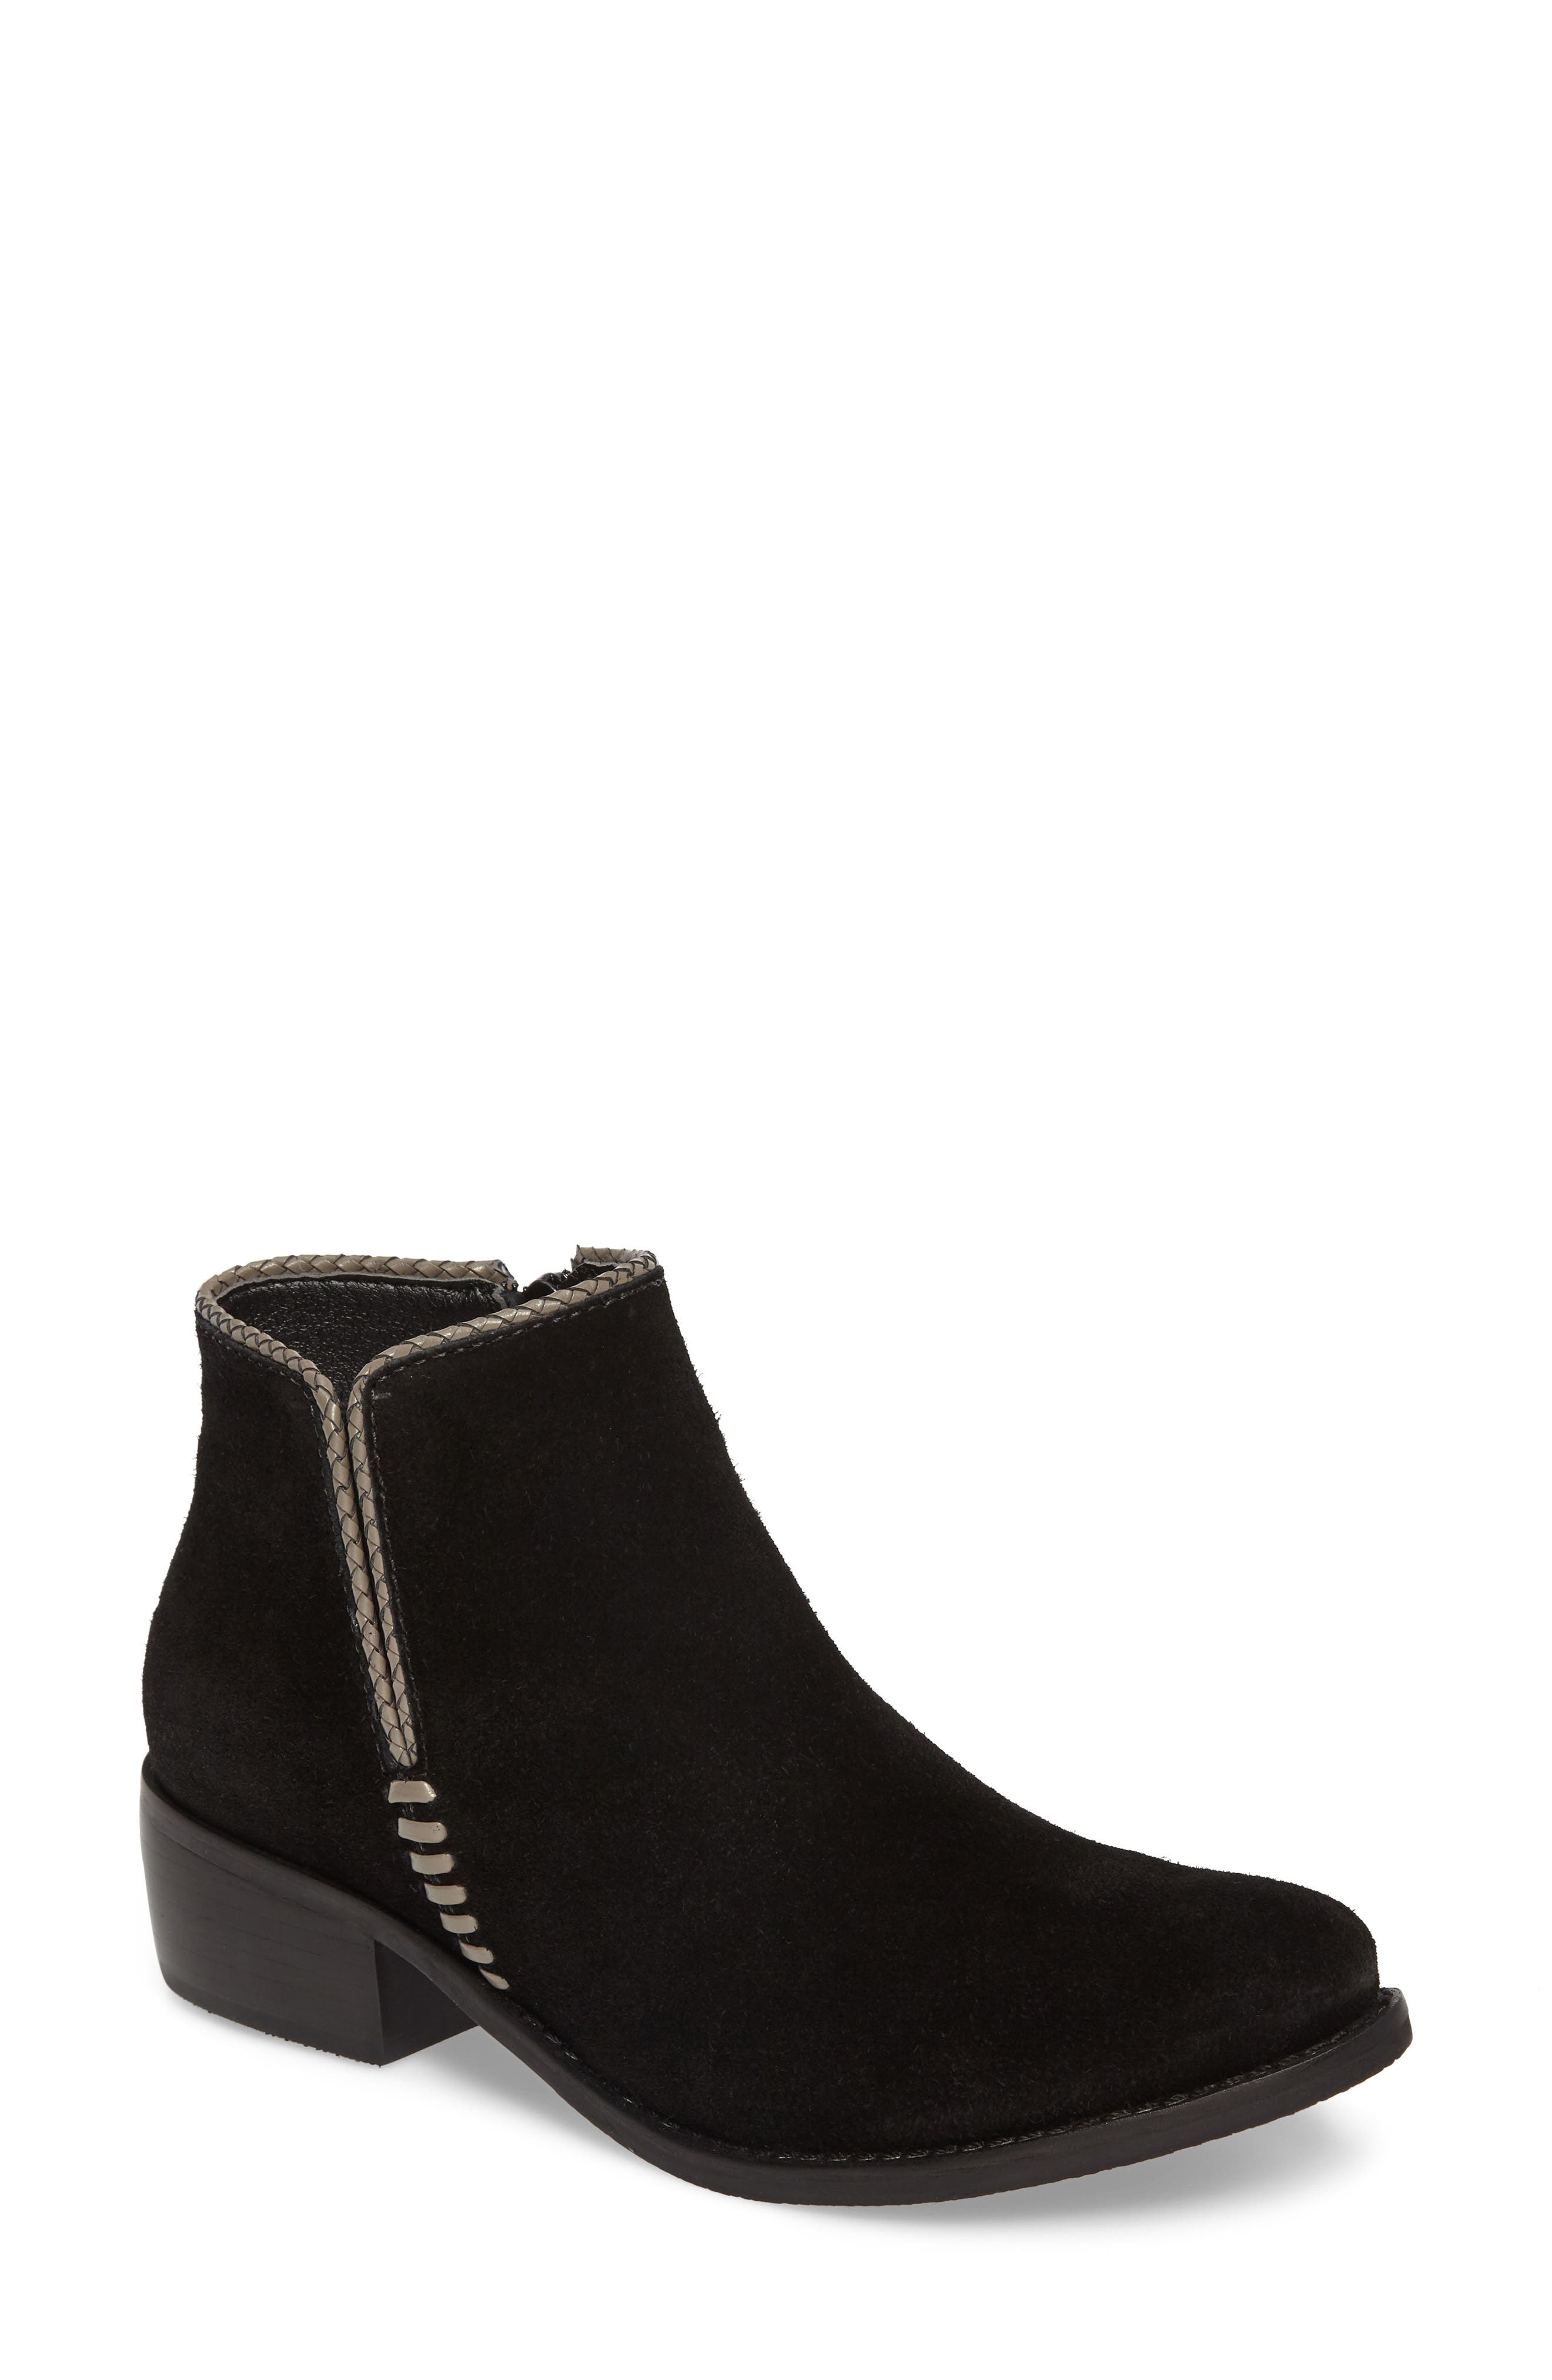 Merge Mid Top Bootie,                             Main thumbnail 3, color,